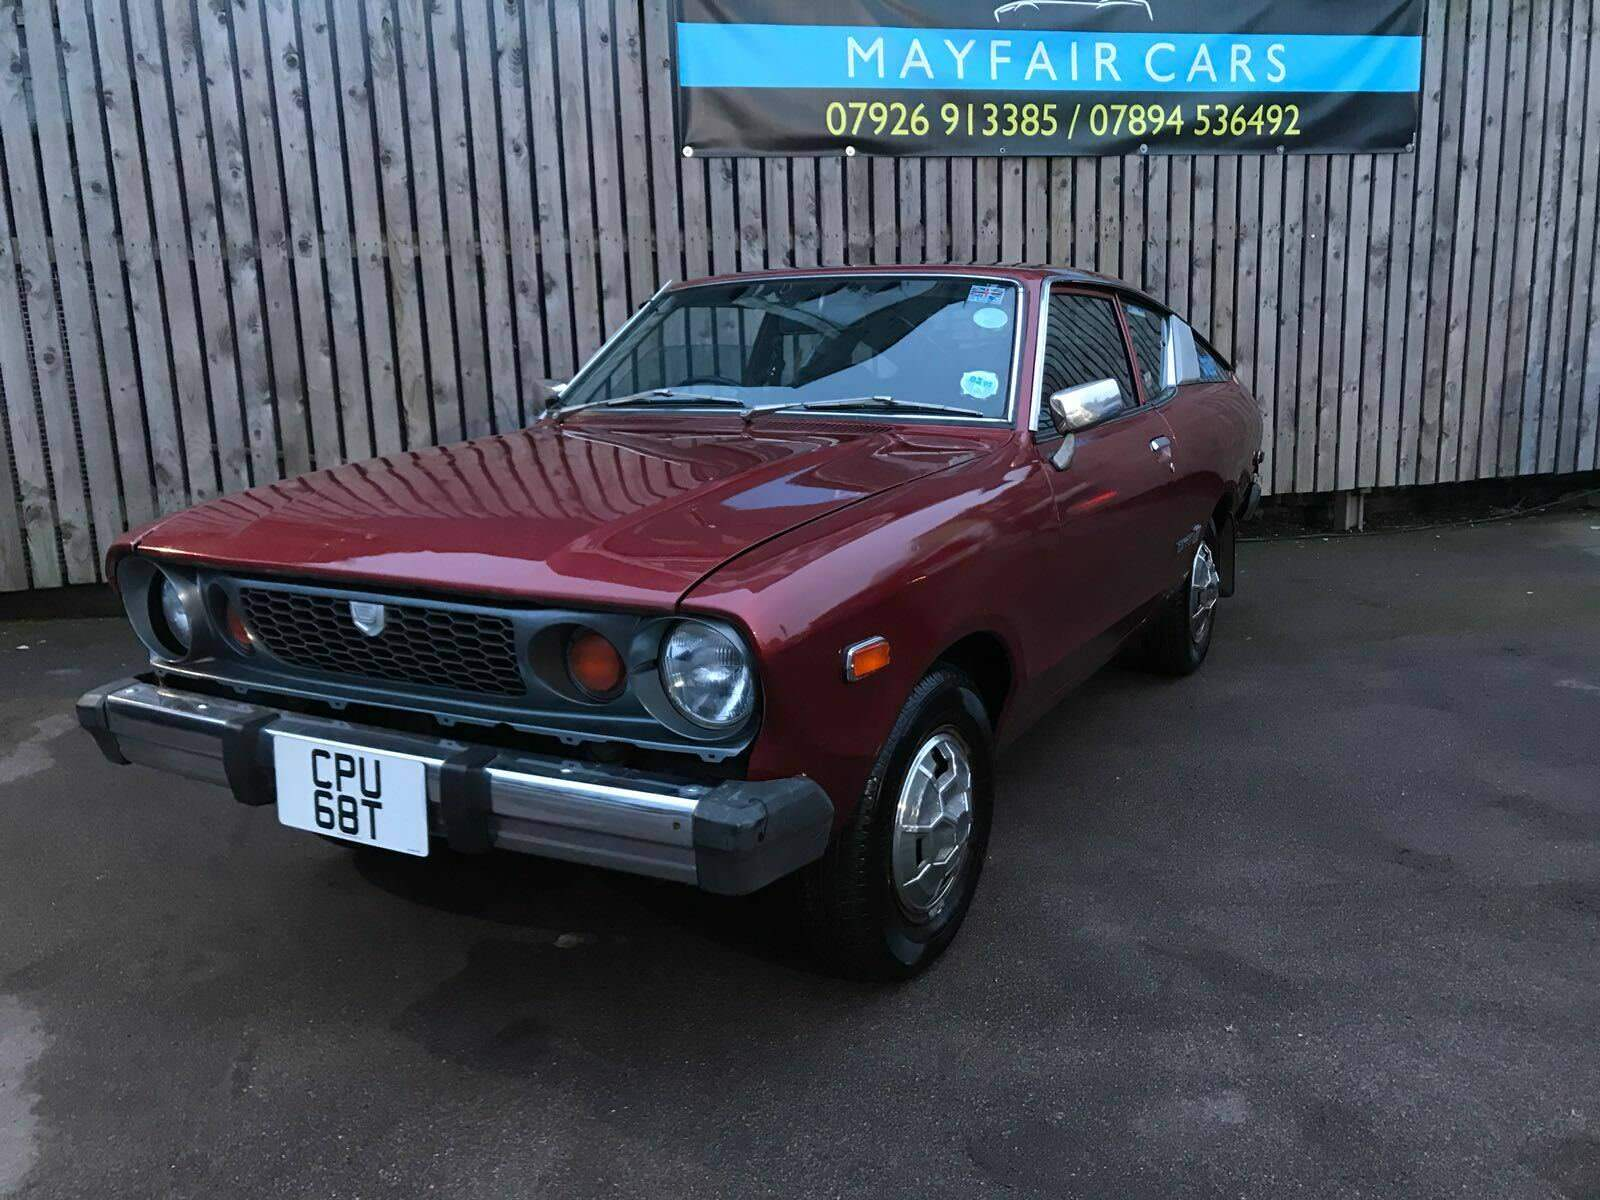 1978 DATSUN 120Y Coupe, Very Rare, Classic Car - £4,250.00 | PicClick UK